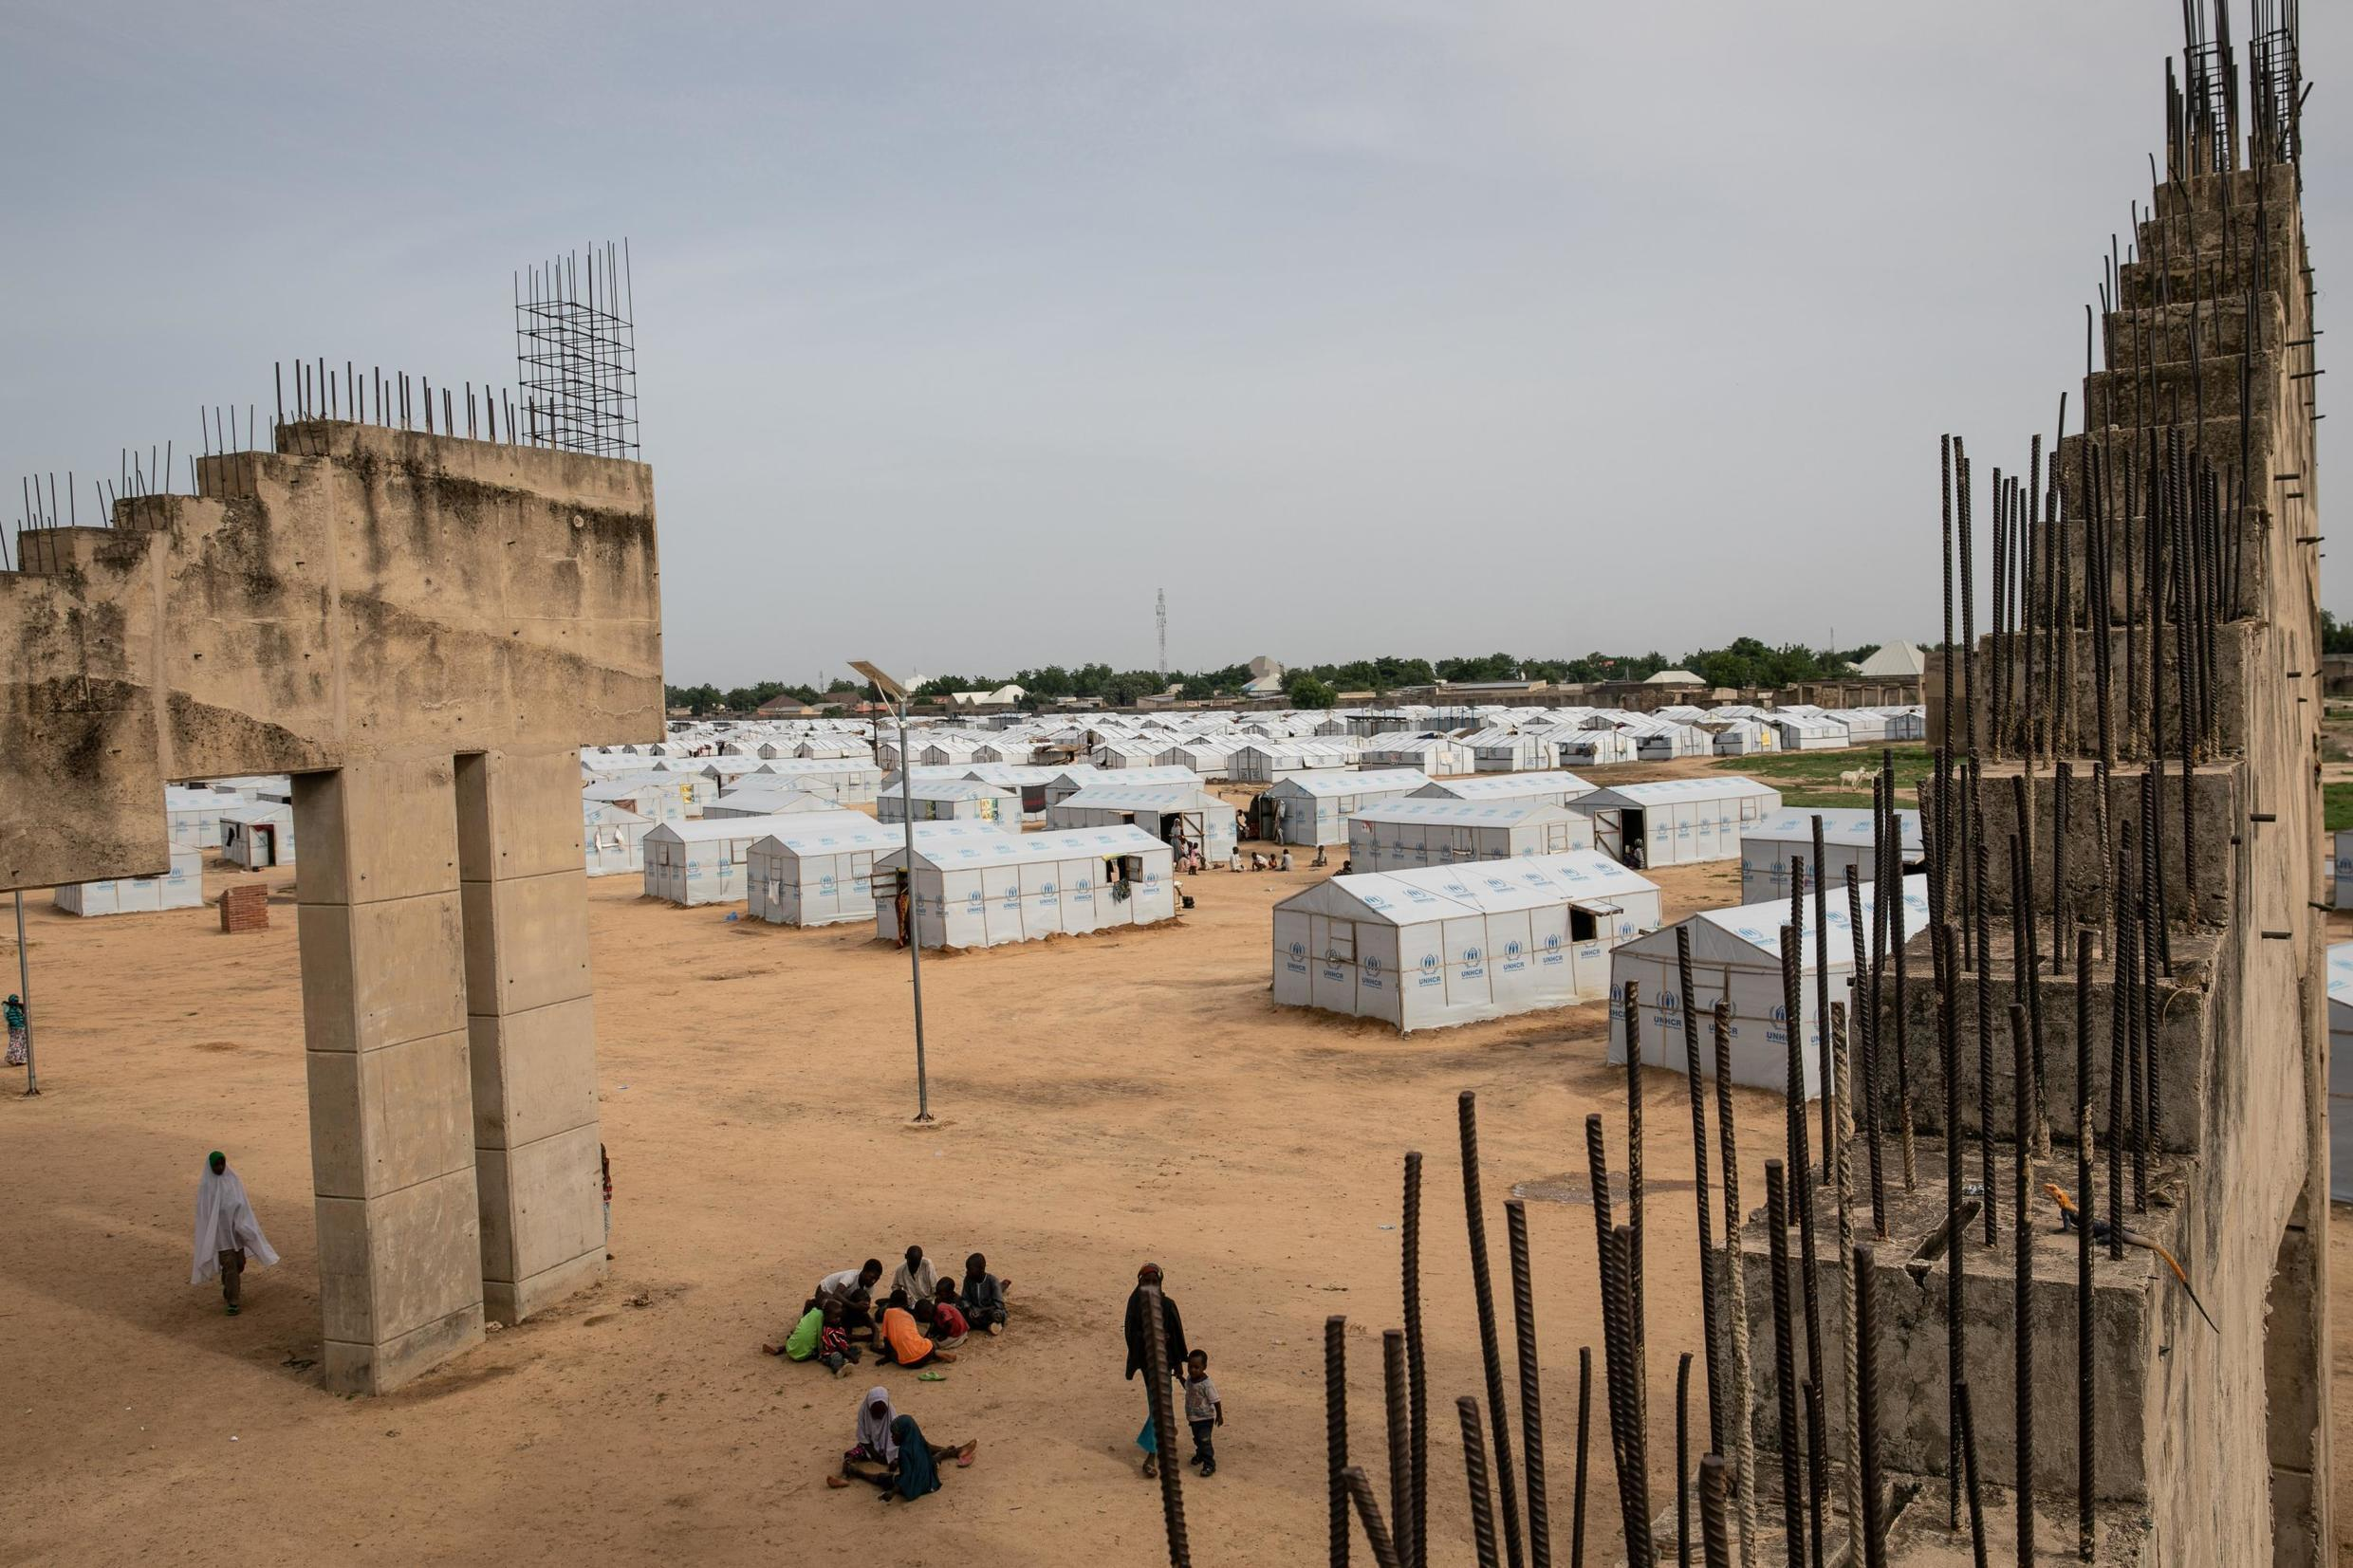 Some two million people have been uprooted from their homes since the Boko Haram insurgency in Nigeria started 10 years ago. Many now survive in displaced camps such as this one at the unfinished Mohammed Goni Stadium in Maiduguri. 26th July 2019.